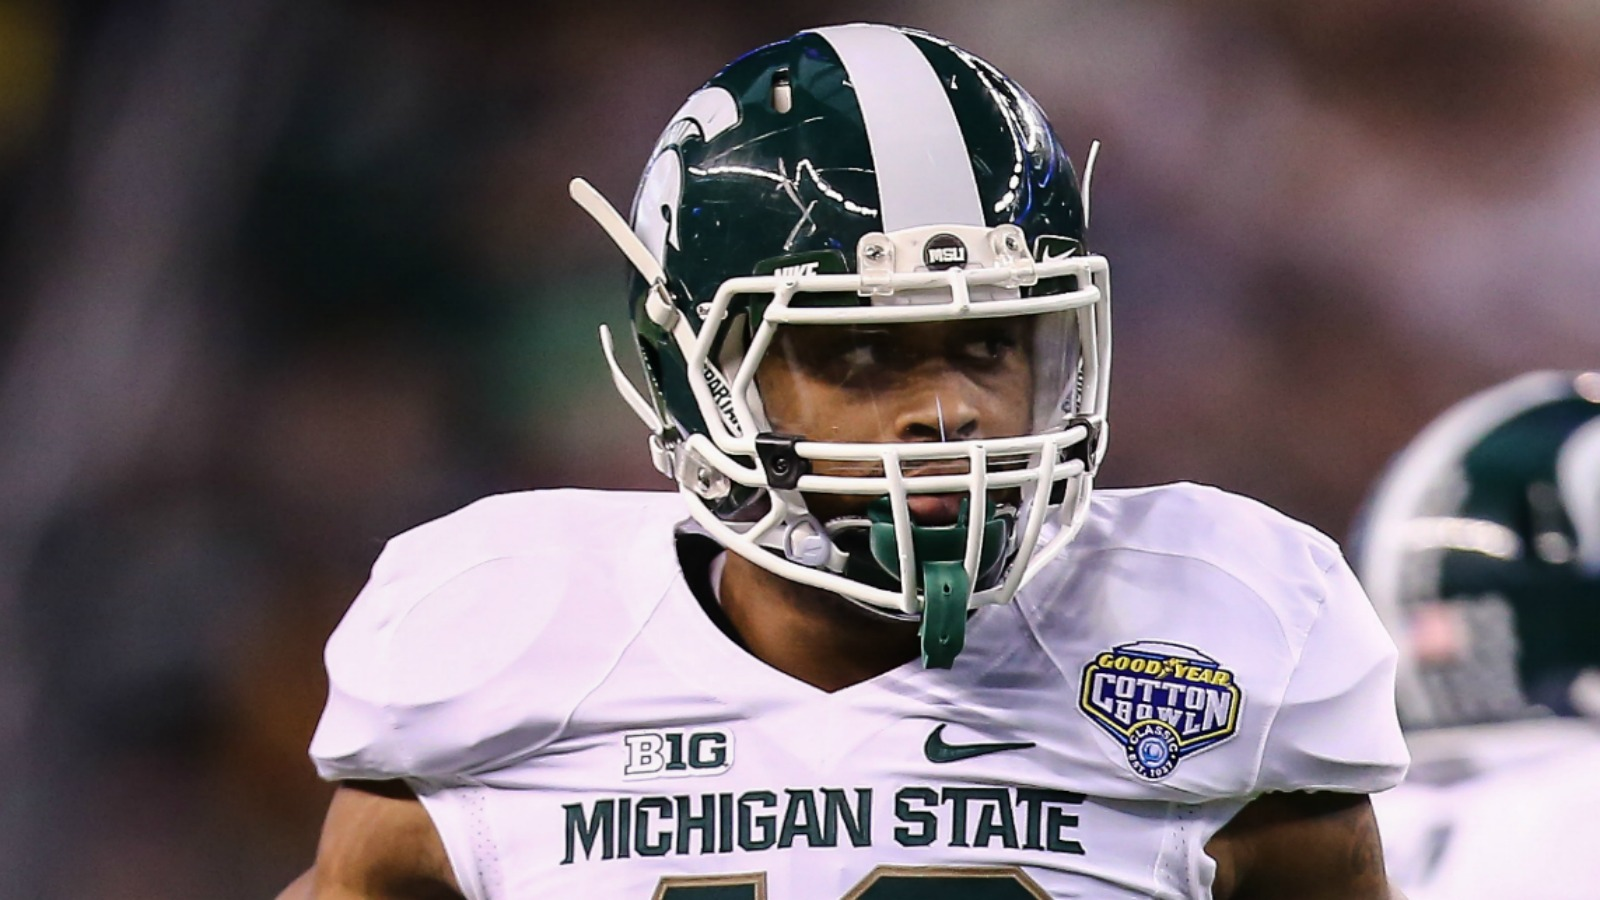 Big Ten opponents now have another reason to fear Michigan State's defense